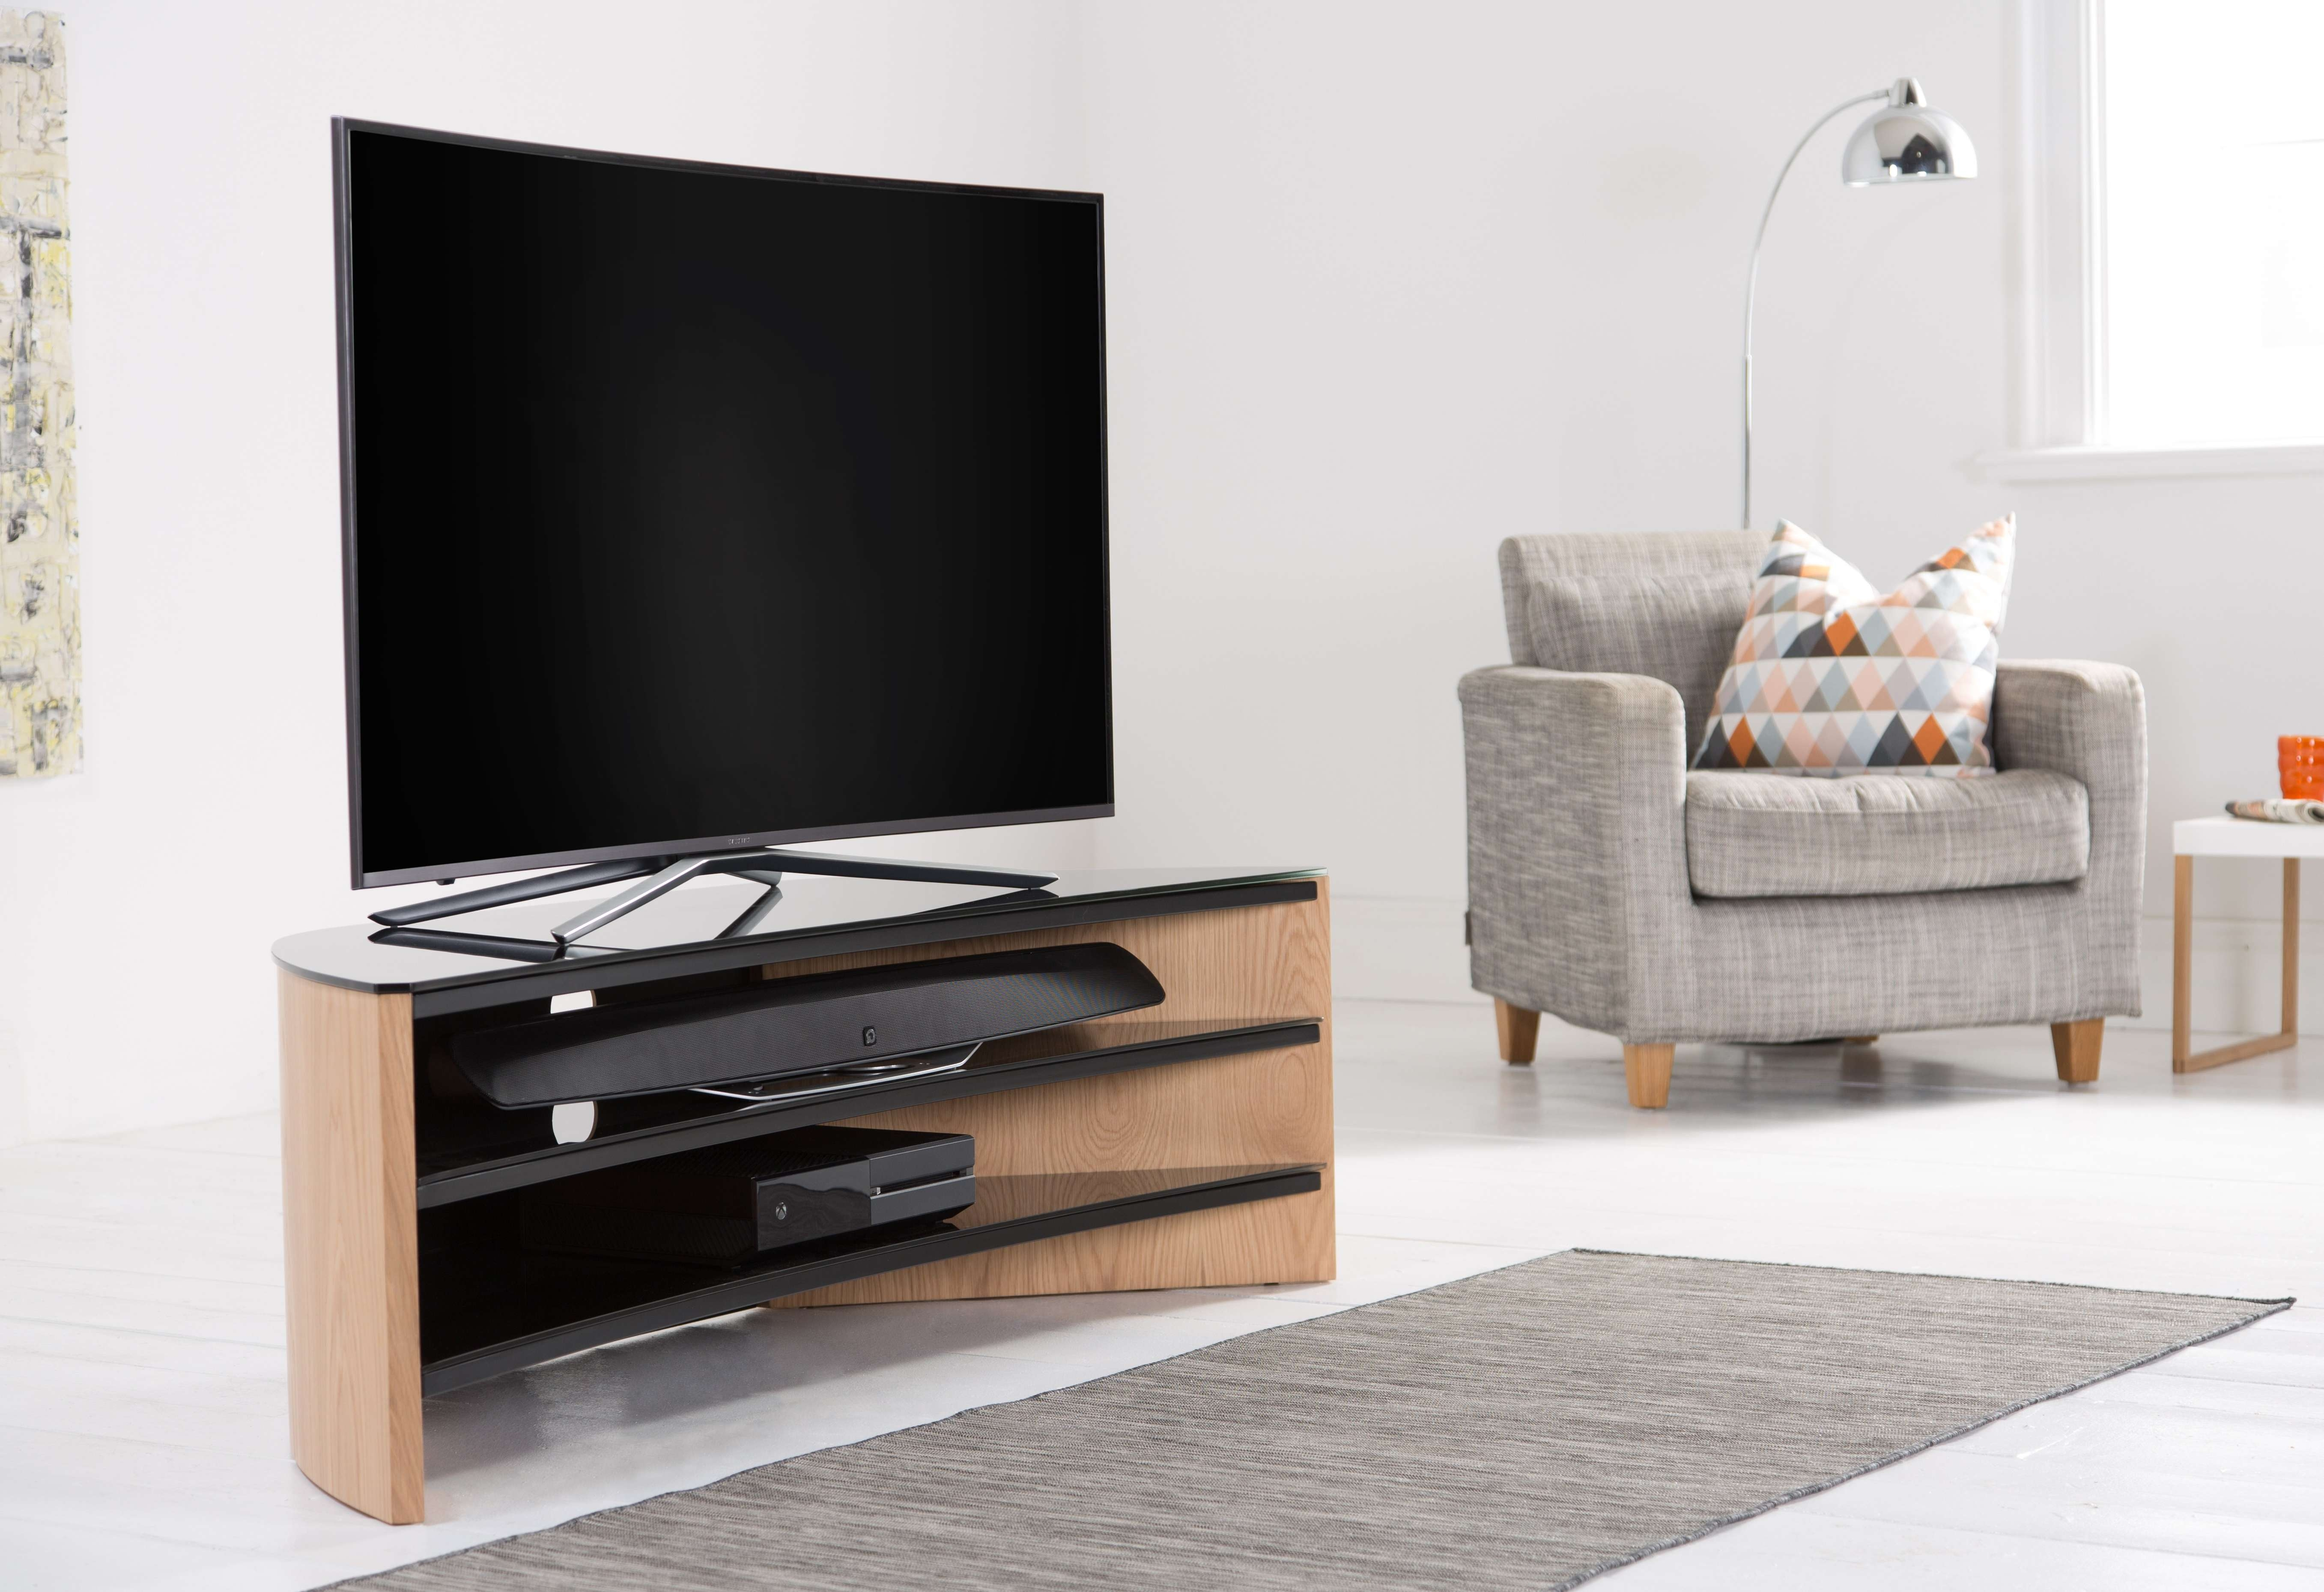 Tv : Tv Stands Rounded Corners Surprising Tv Stands Rounded Throughout Tv Stands Rounded Corners (View 6 of 15)